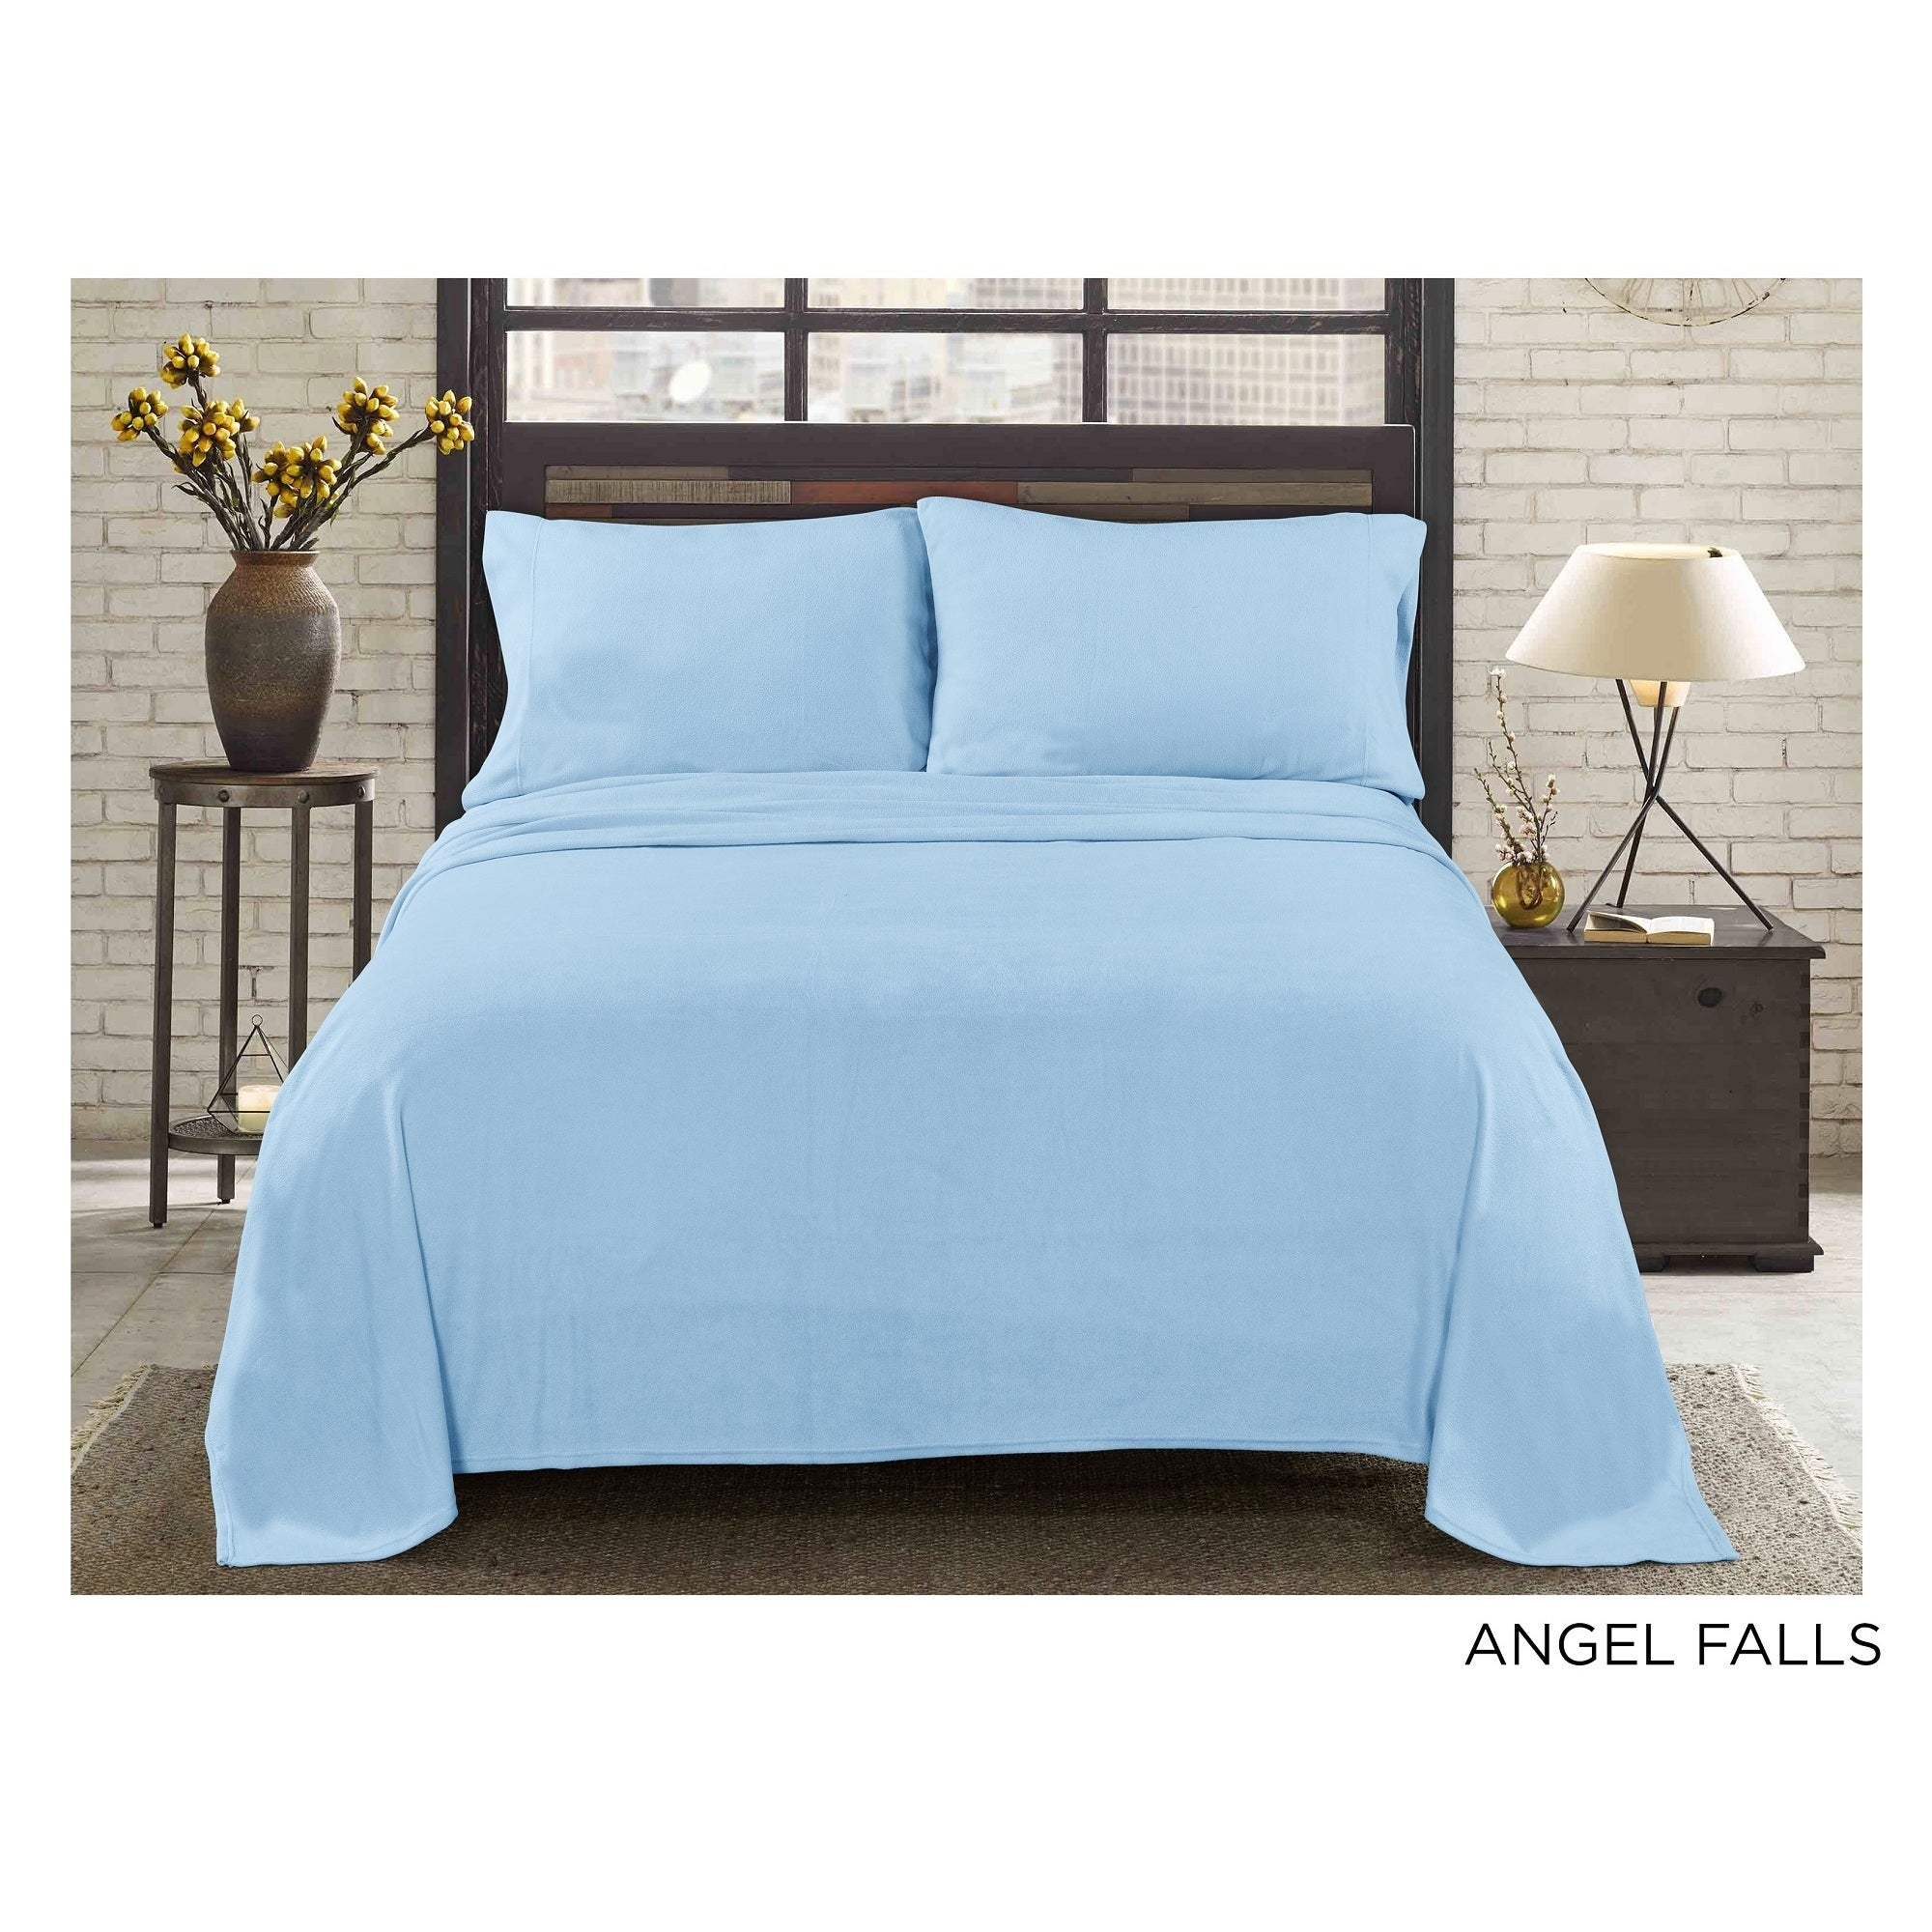 961573faa6 Shop Asher Home Super Soft HeavyWeight Fleece Sheet Set - Free Shipping On  Orders Over  45 - Overstock - 13982800